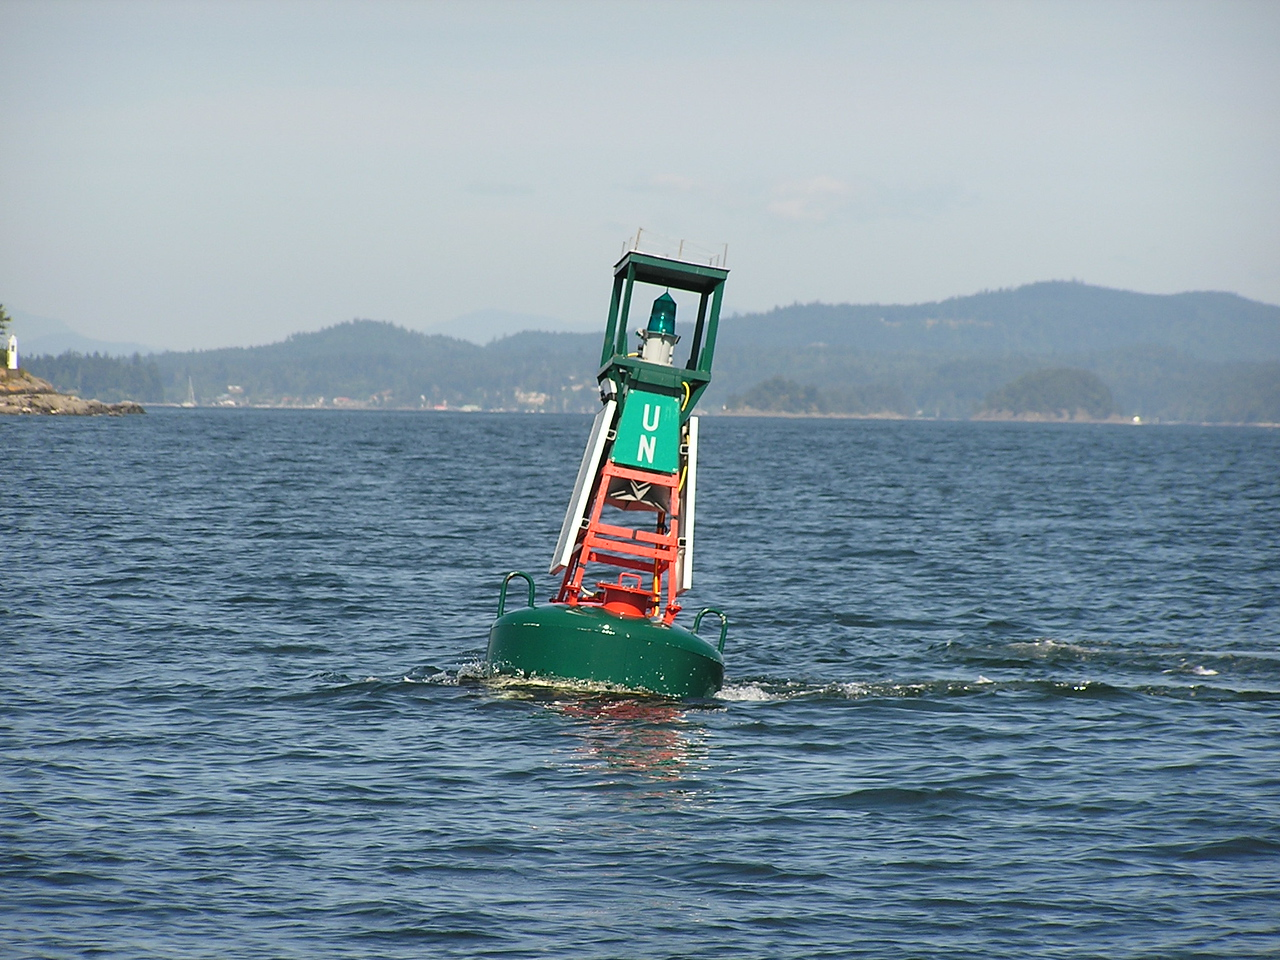 Strong current is causing the buoy to heel